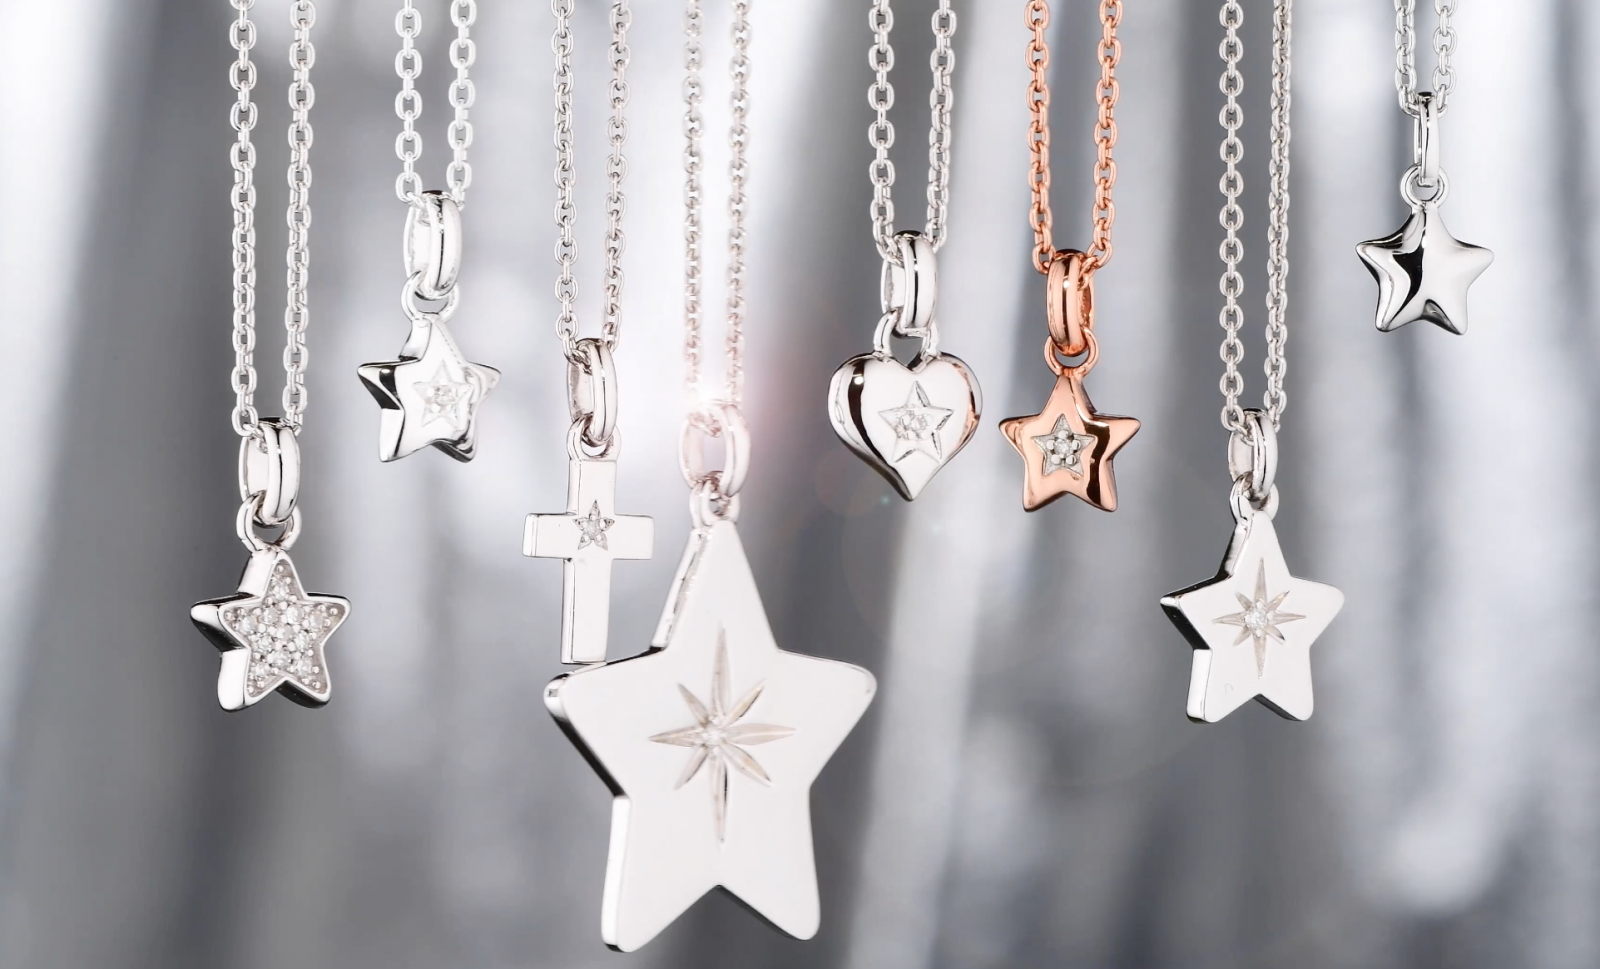 A group of hanging star necklaces